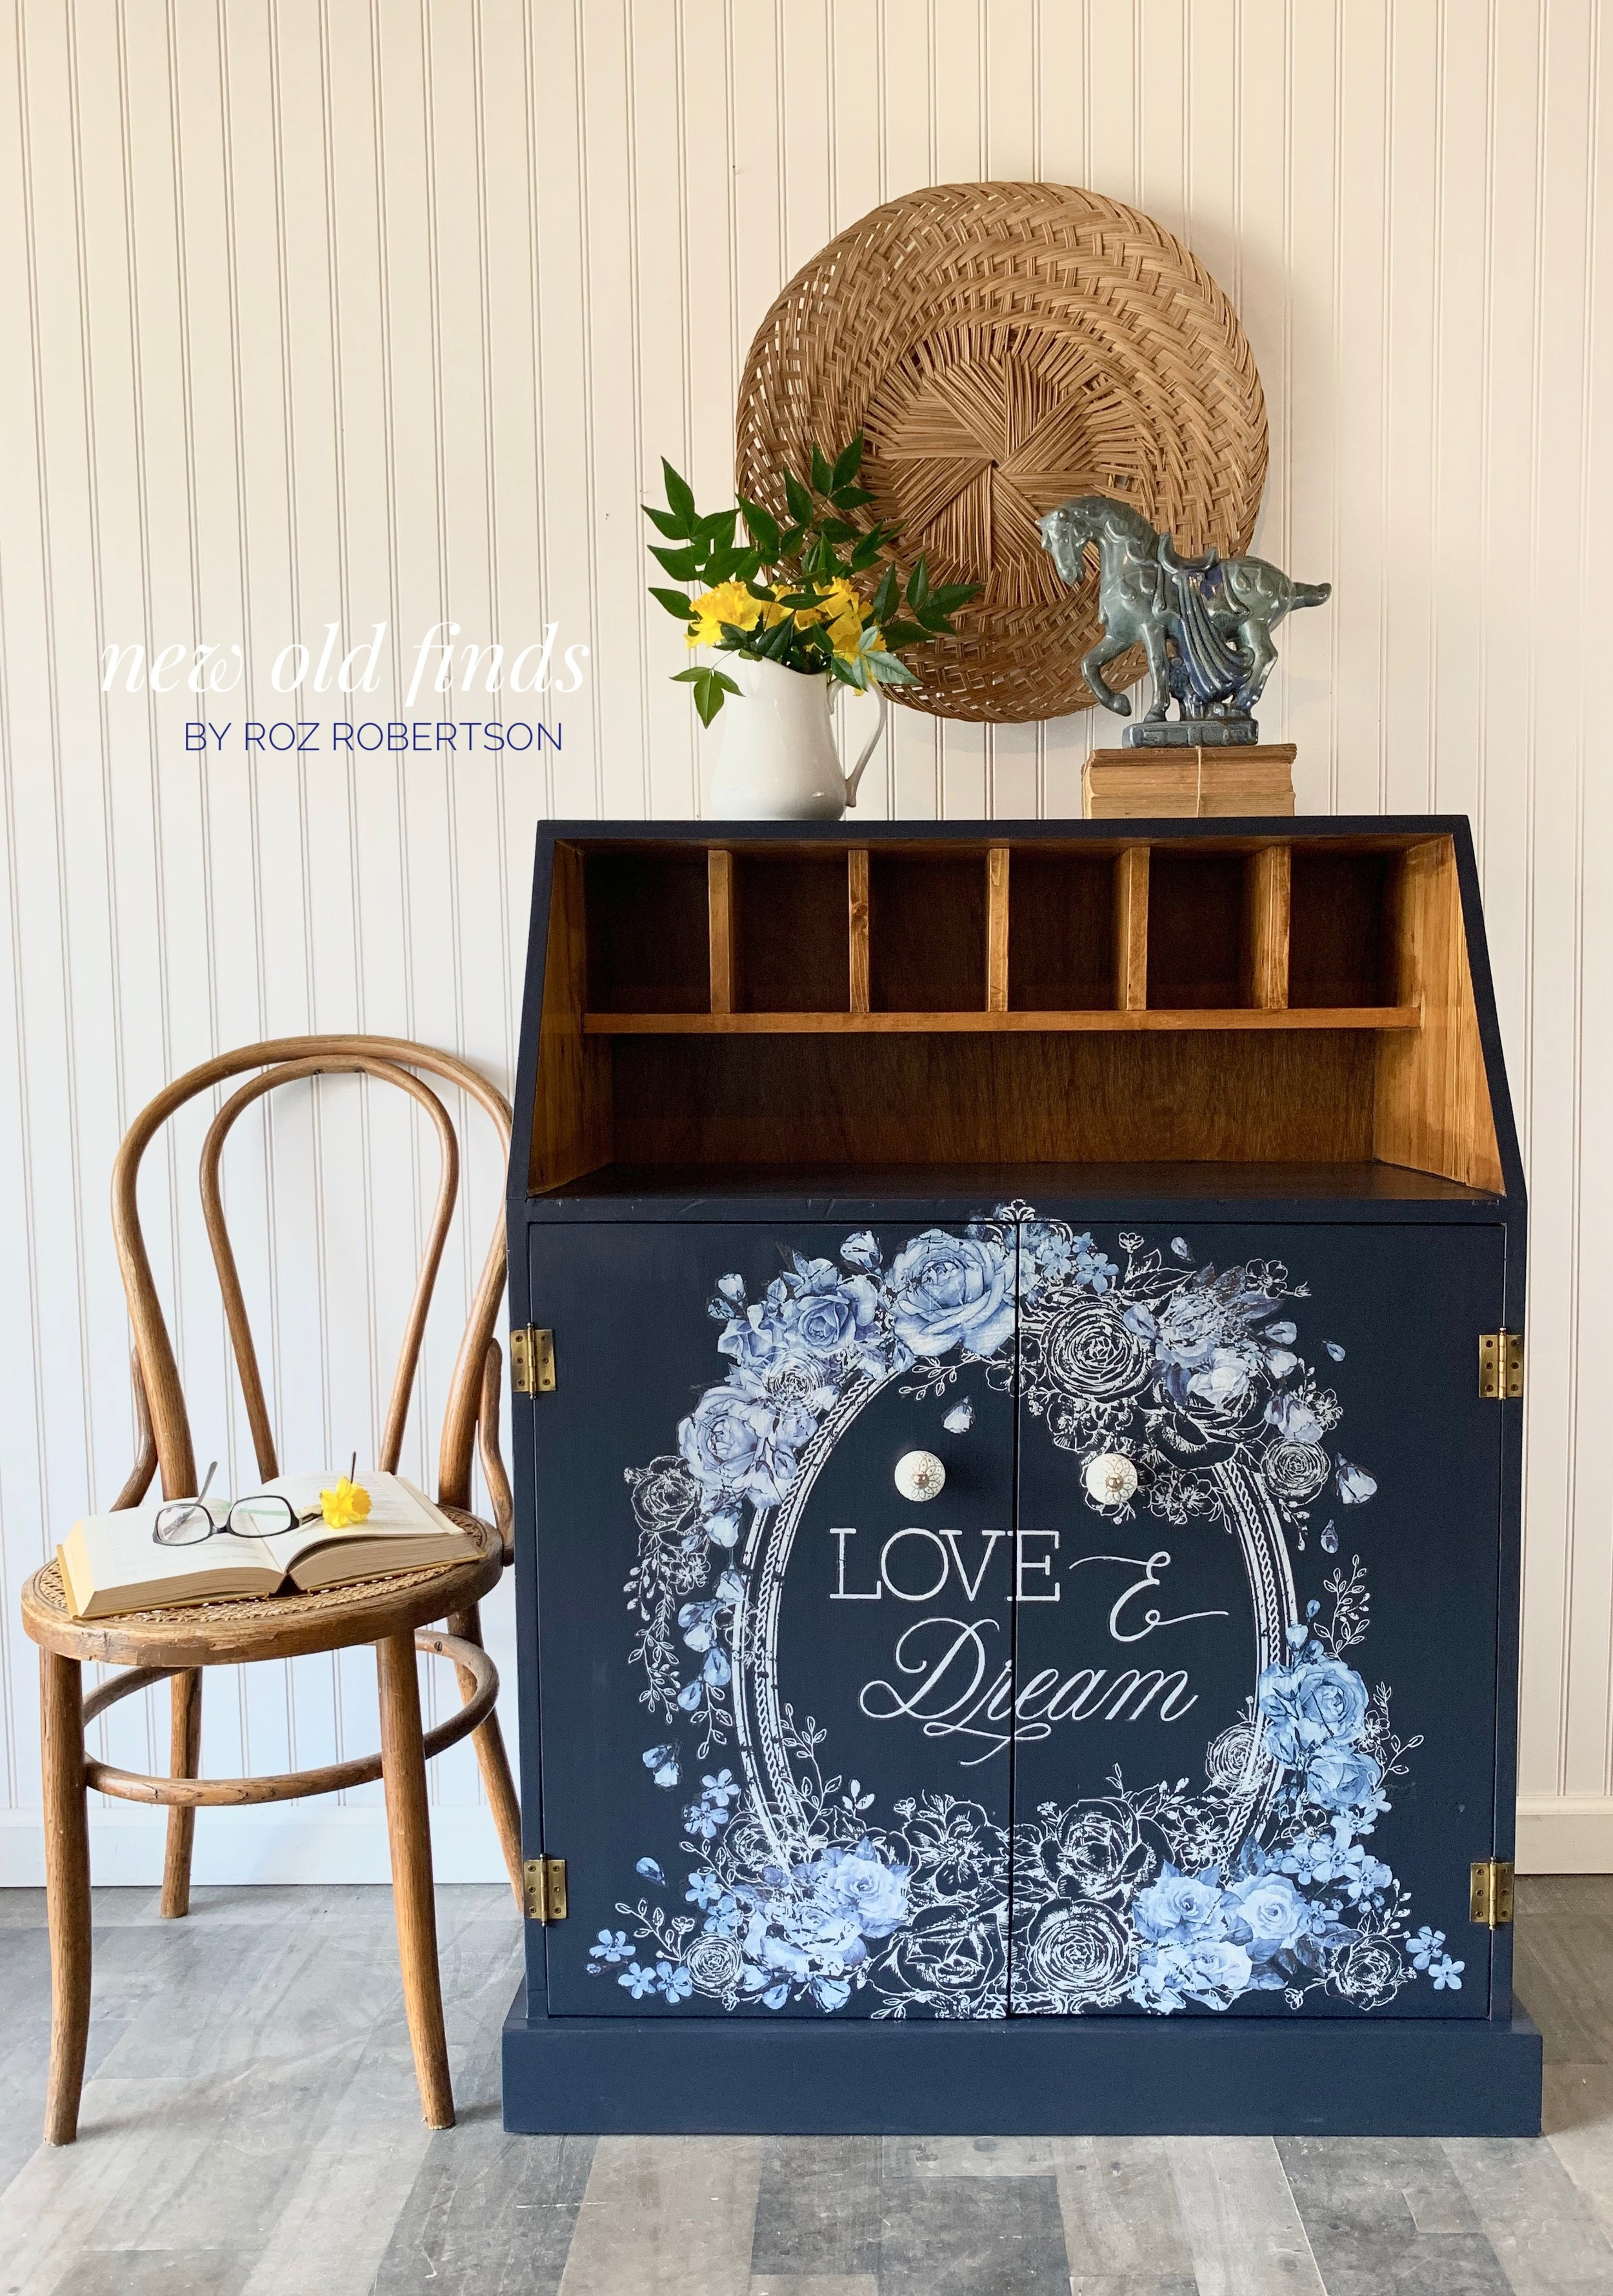 """Love & Dream """"I really wanted to do this piece justice, it's a hand built secretary desk and there is an inscription on the back, it's very very well made but lacked oomph so I have prettied her up and I think she is a doll now and would make a wondrous statement piece. New blue and white knobs were added to the doors and they work perfectly…."""""""